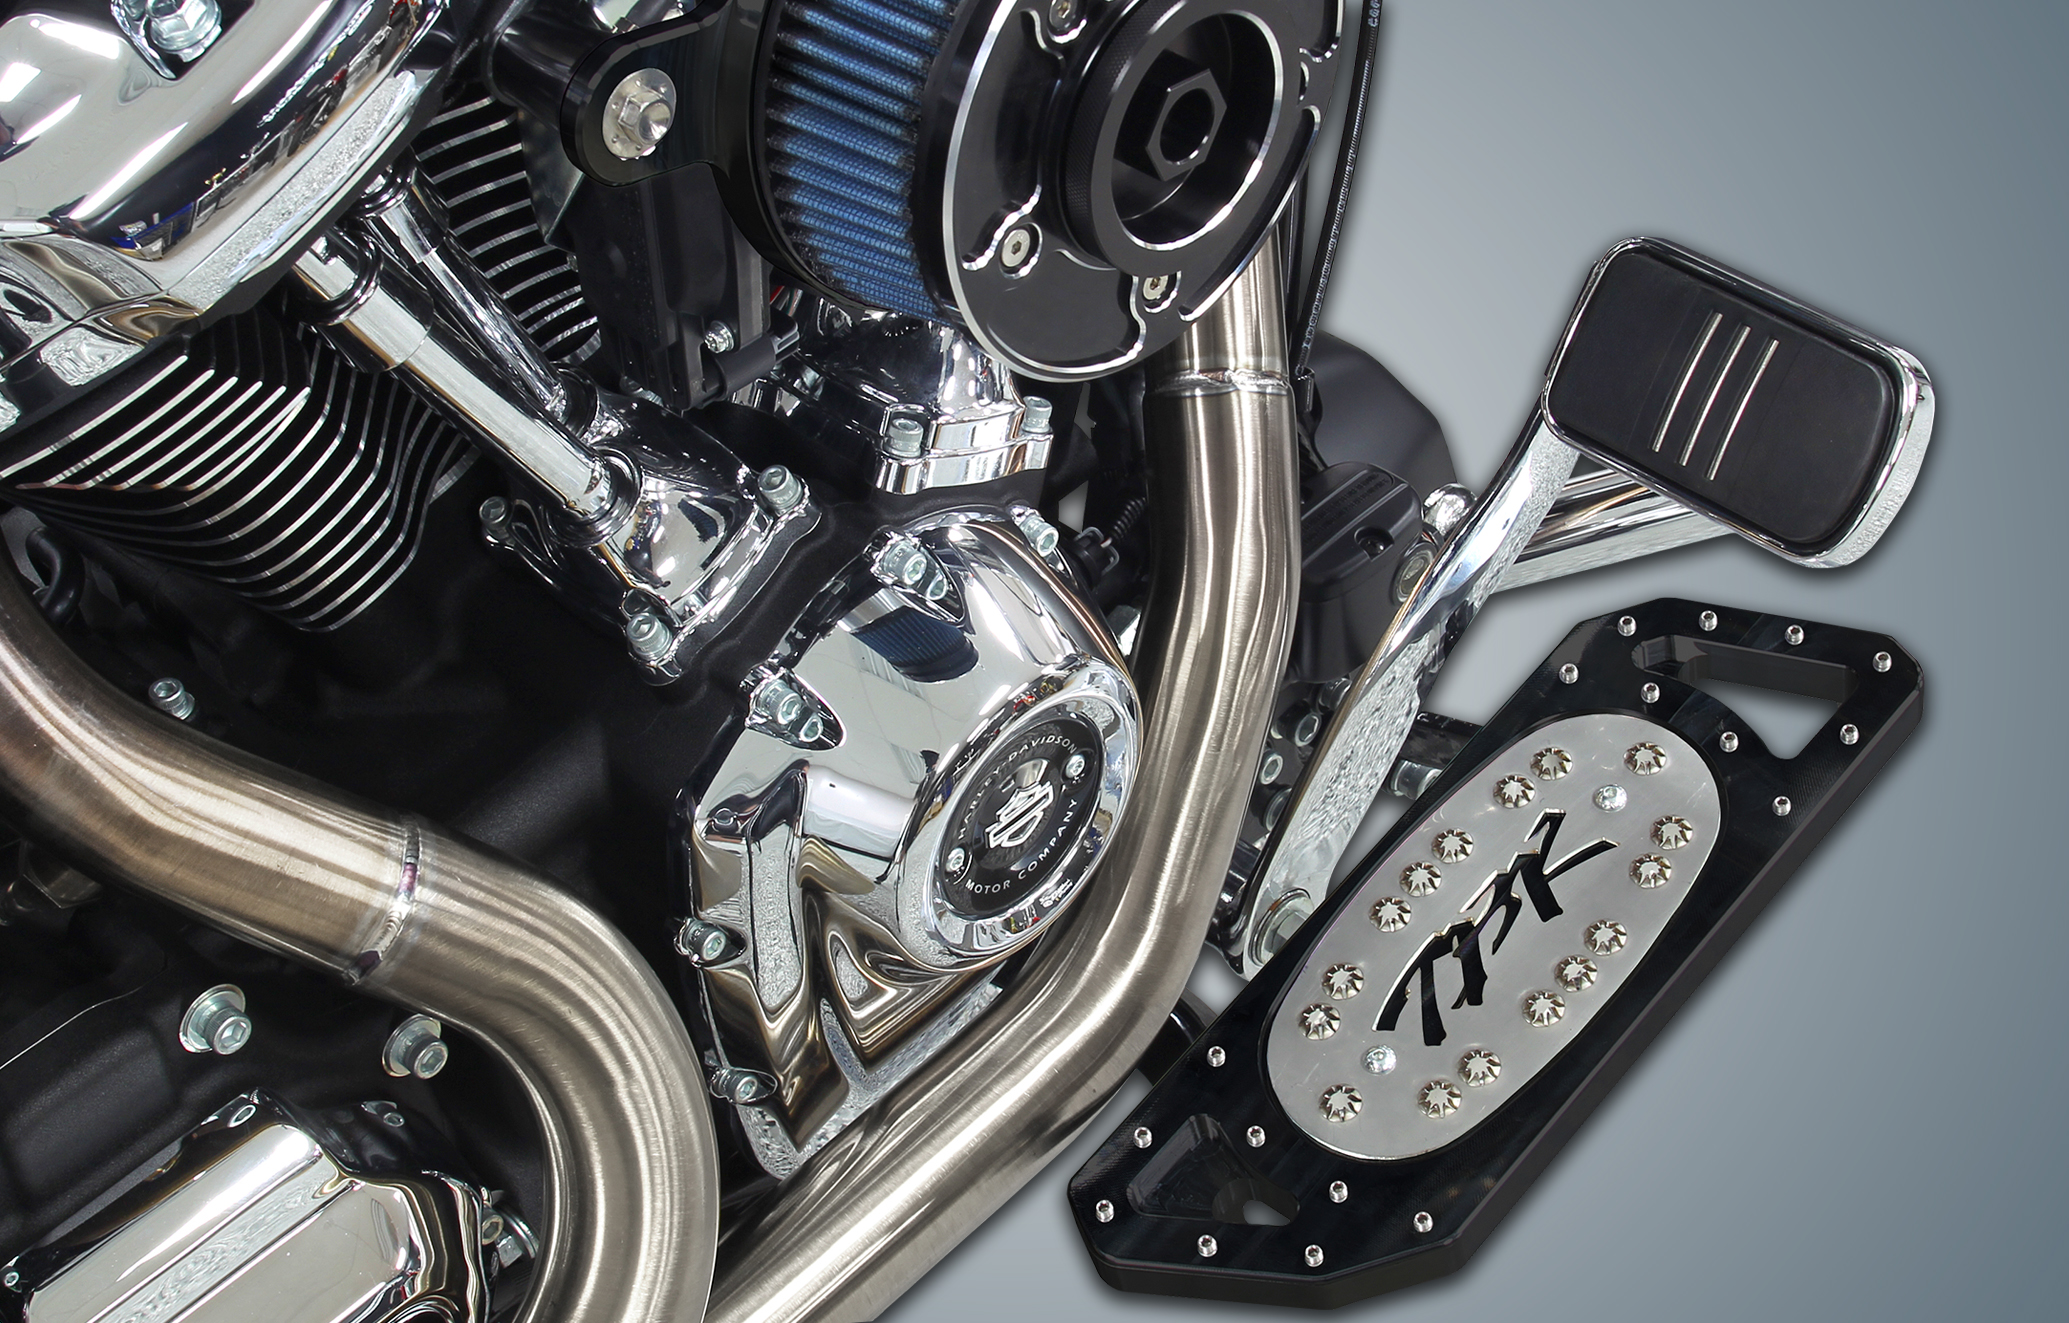 Two Brothers Racing proudly introduces Floorboards for HD Touring & Softail models